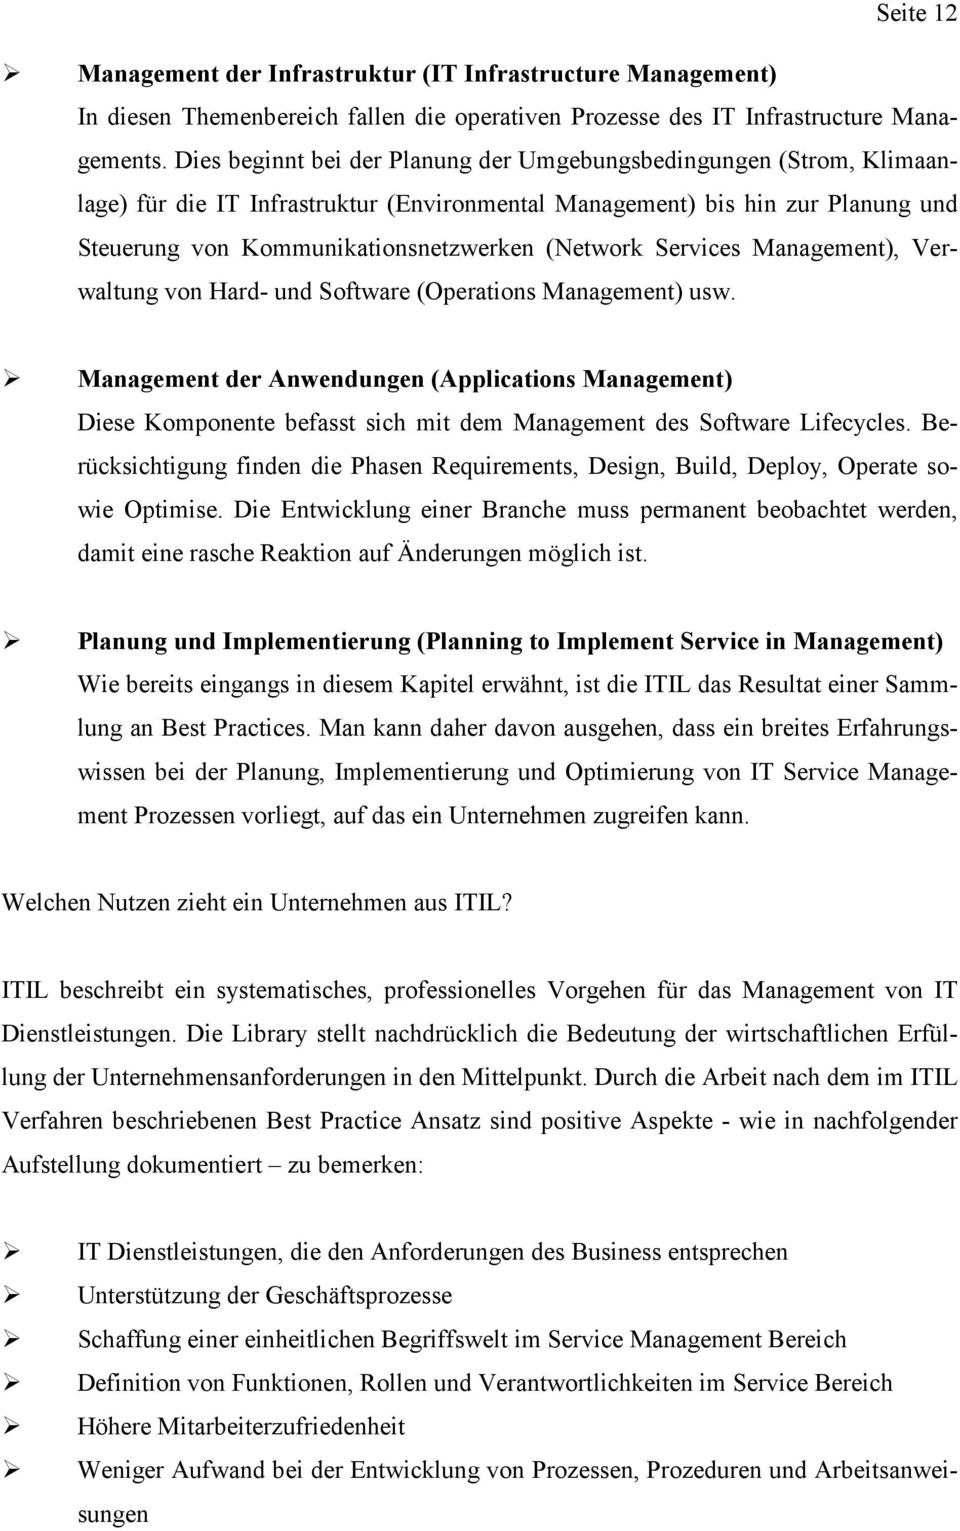 Services Management), Verwaltung von Hard- und Software (Operations Management) usw.